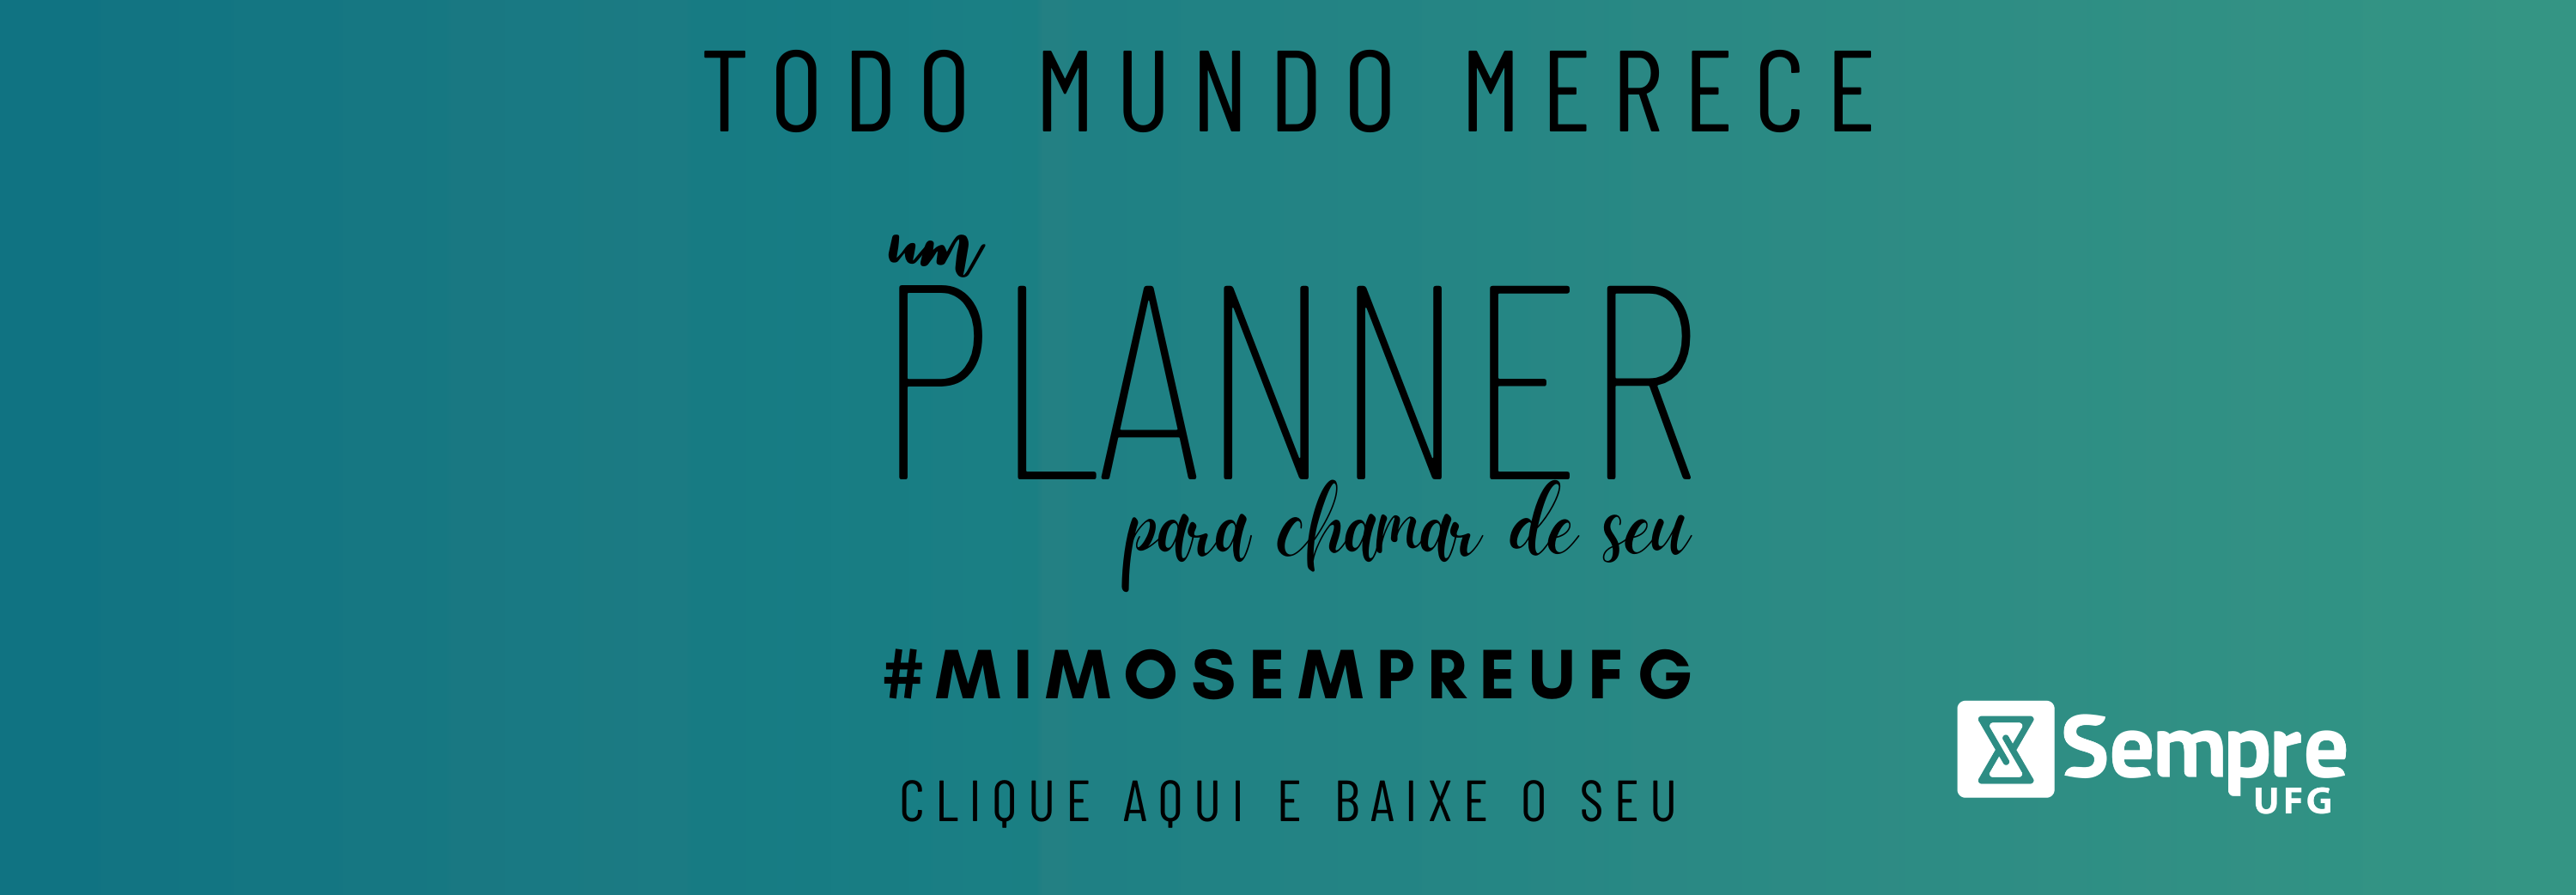 Mimo_planner